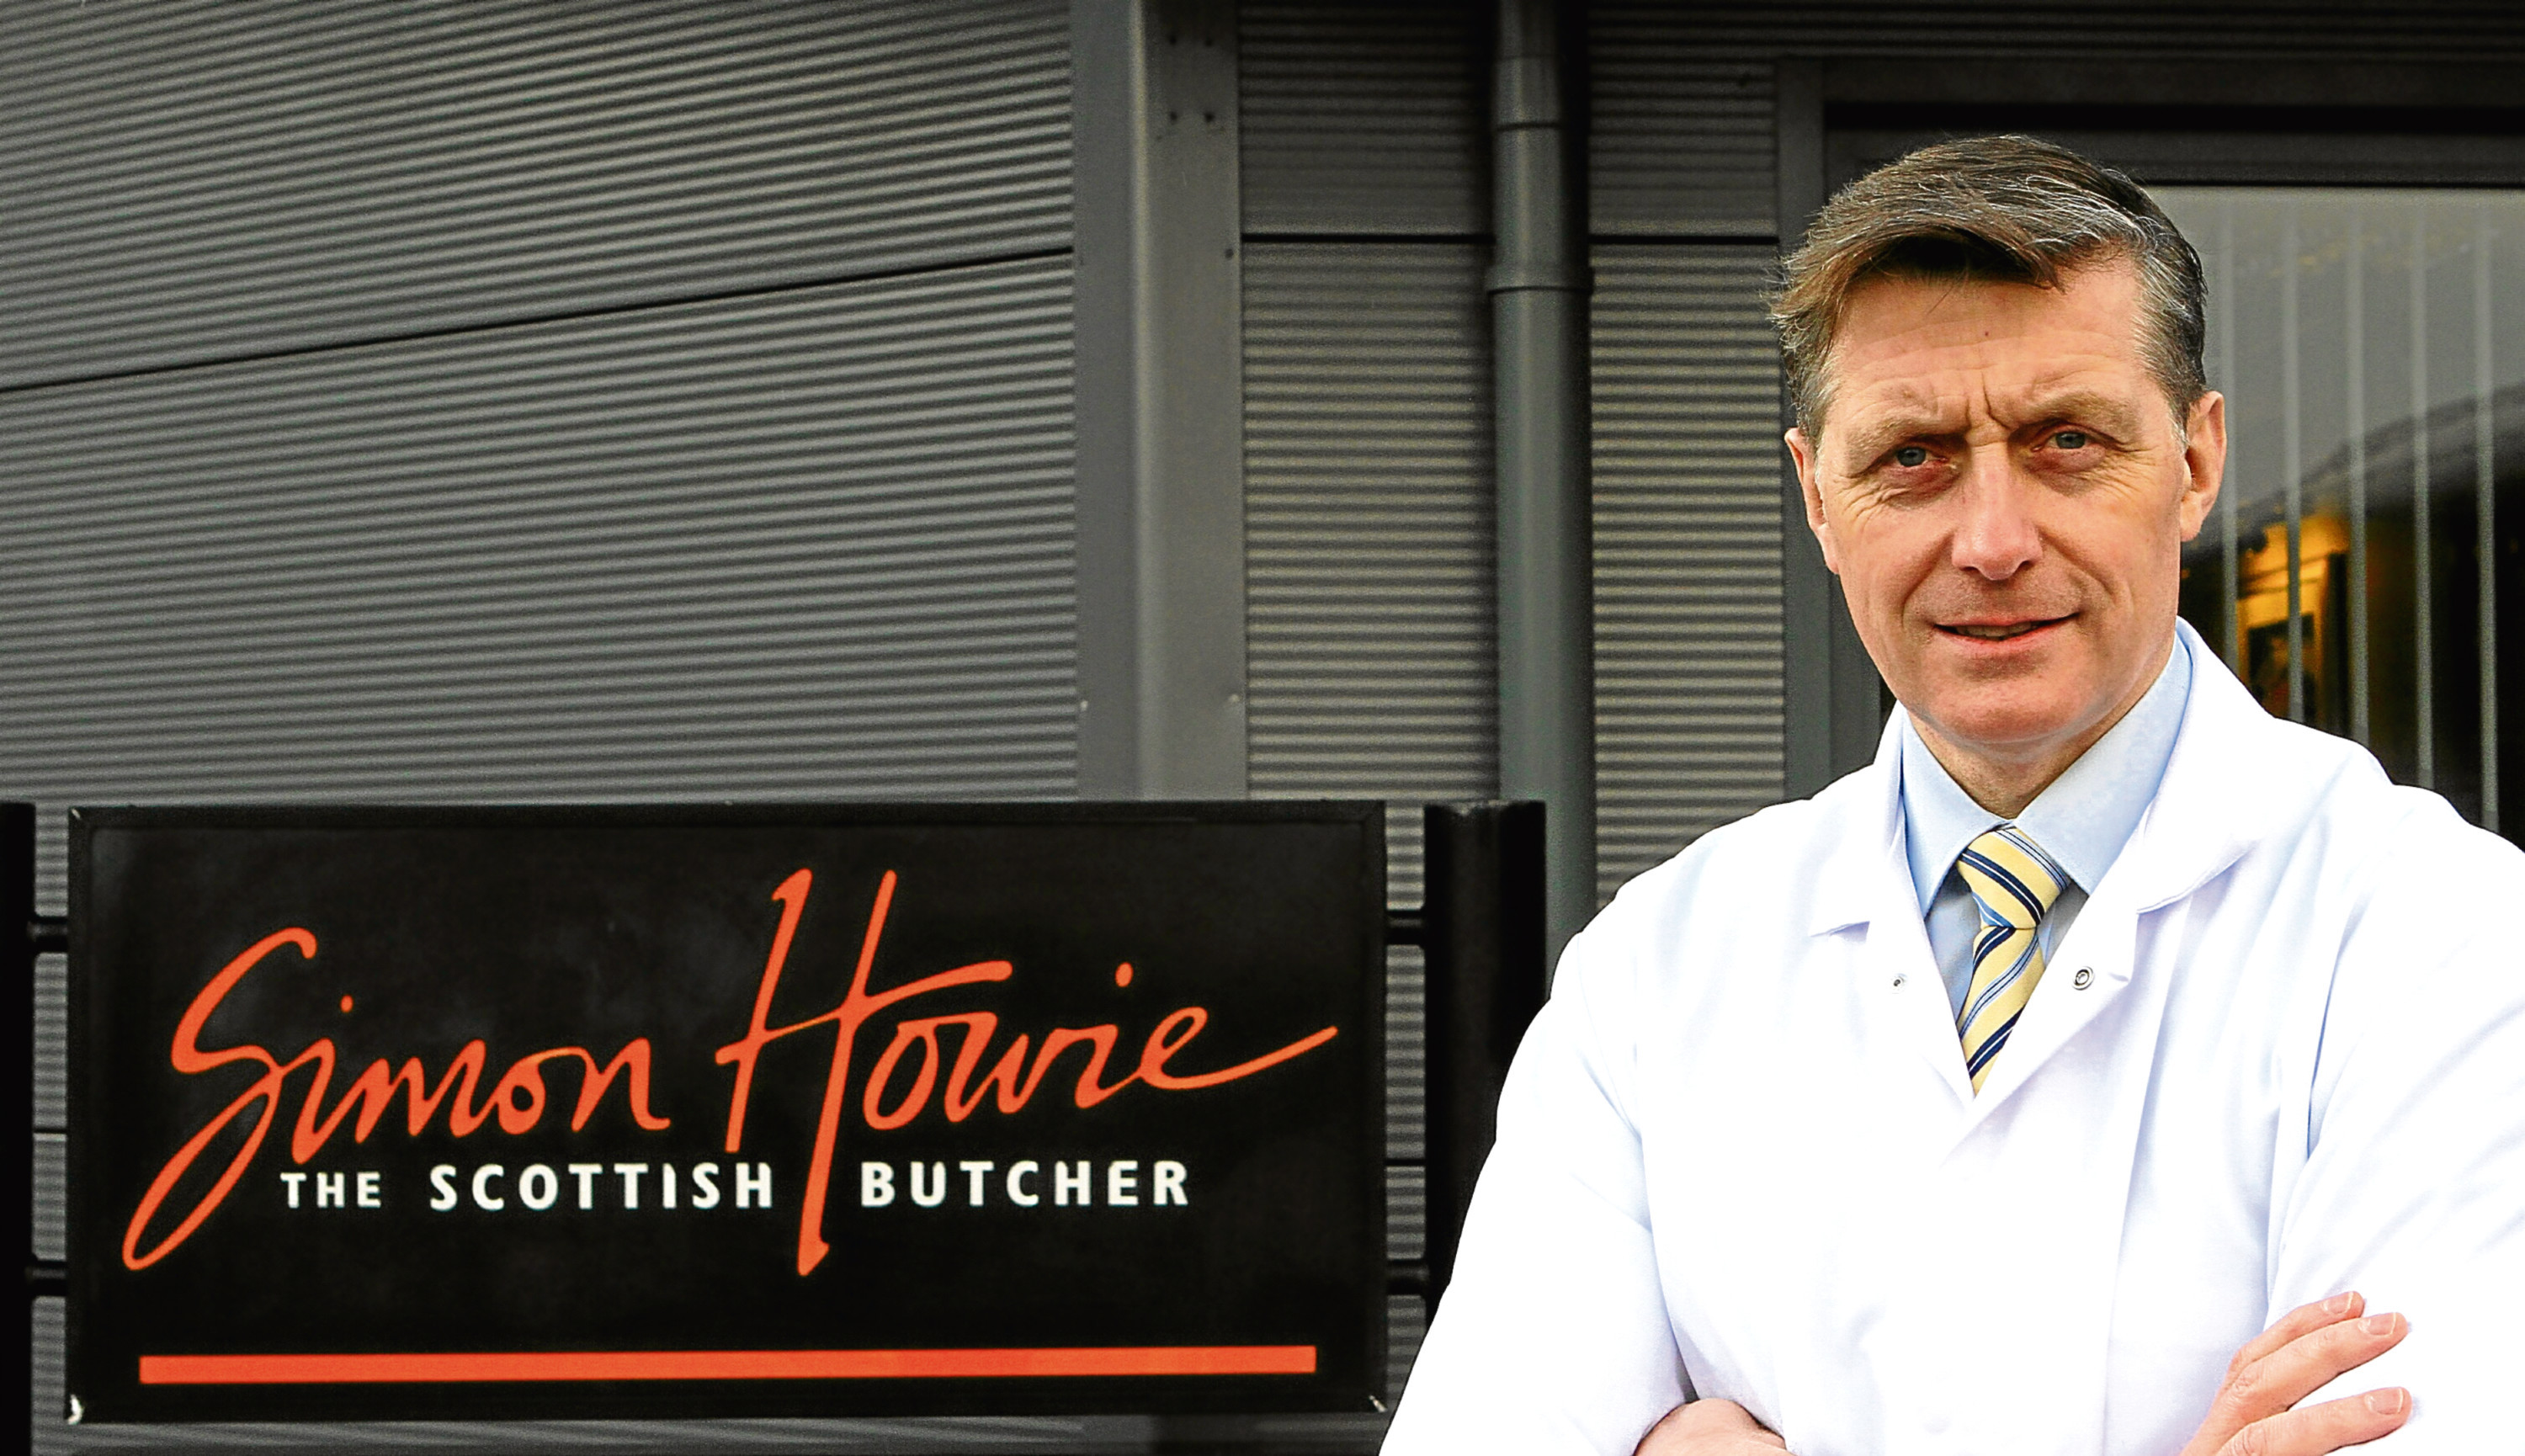 Courier Features - Caroline Lindsay story - Simon Howie and haggis - Dunning. 